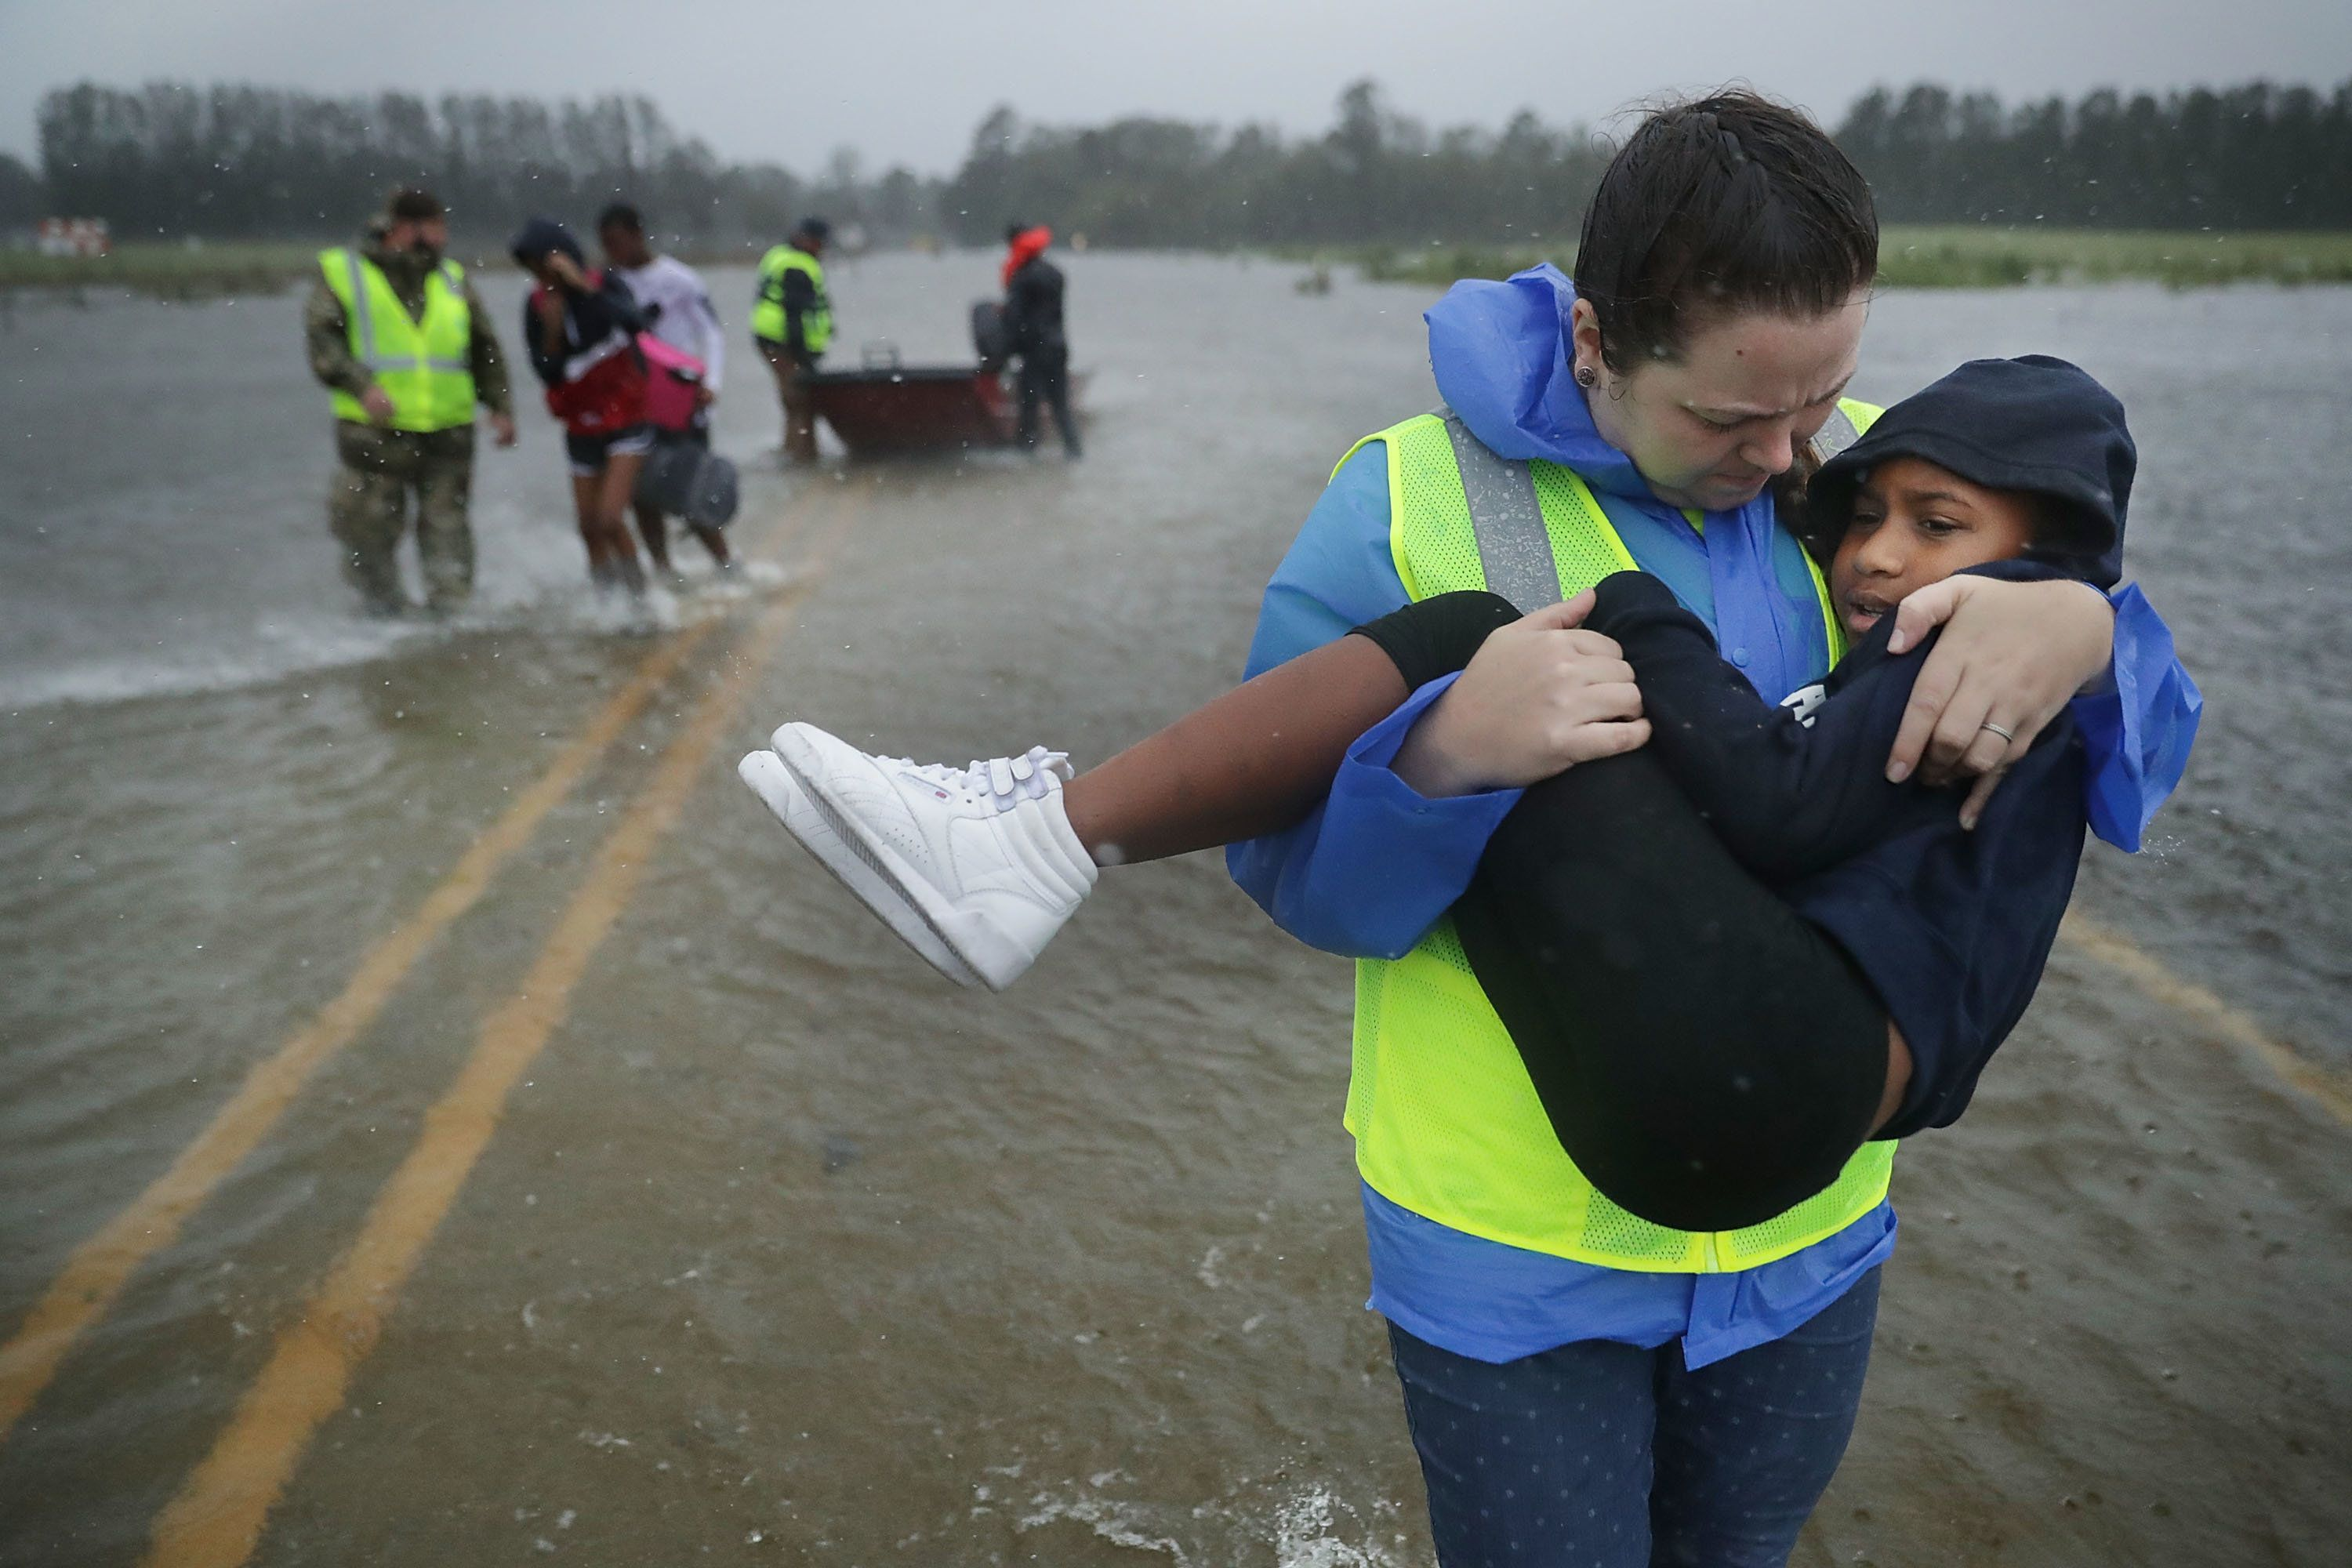 A volunteer from the Civilian Crisis Response Team carries a child out of the floodwaters in James City on Friday.